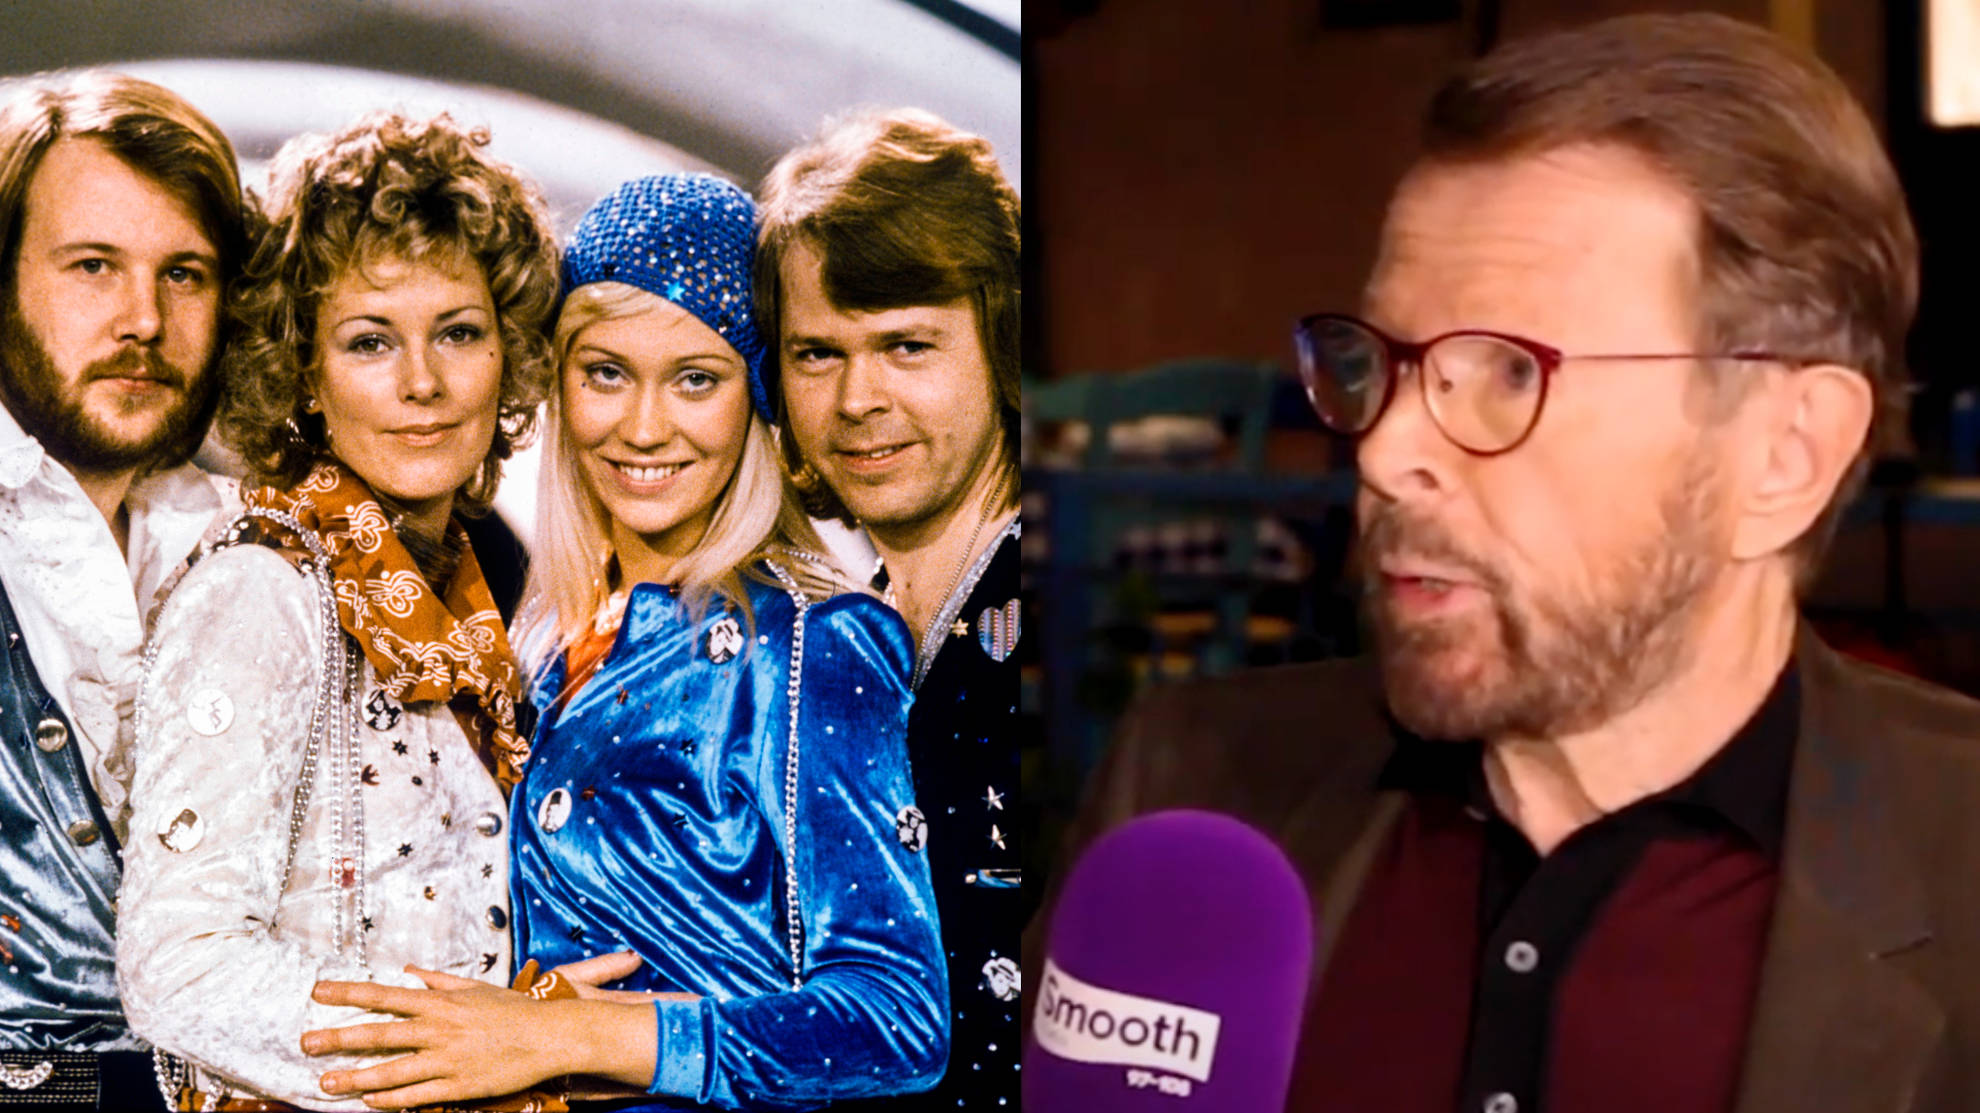 ABBA to release new singles this year, confirms Björn Ulvaeus   Smooth